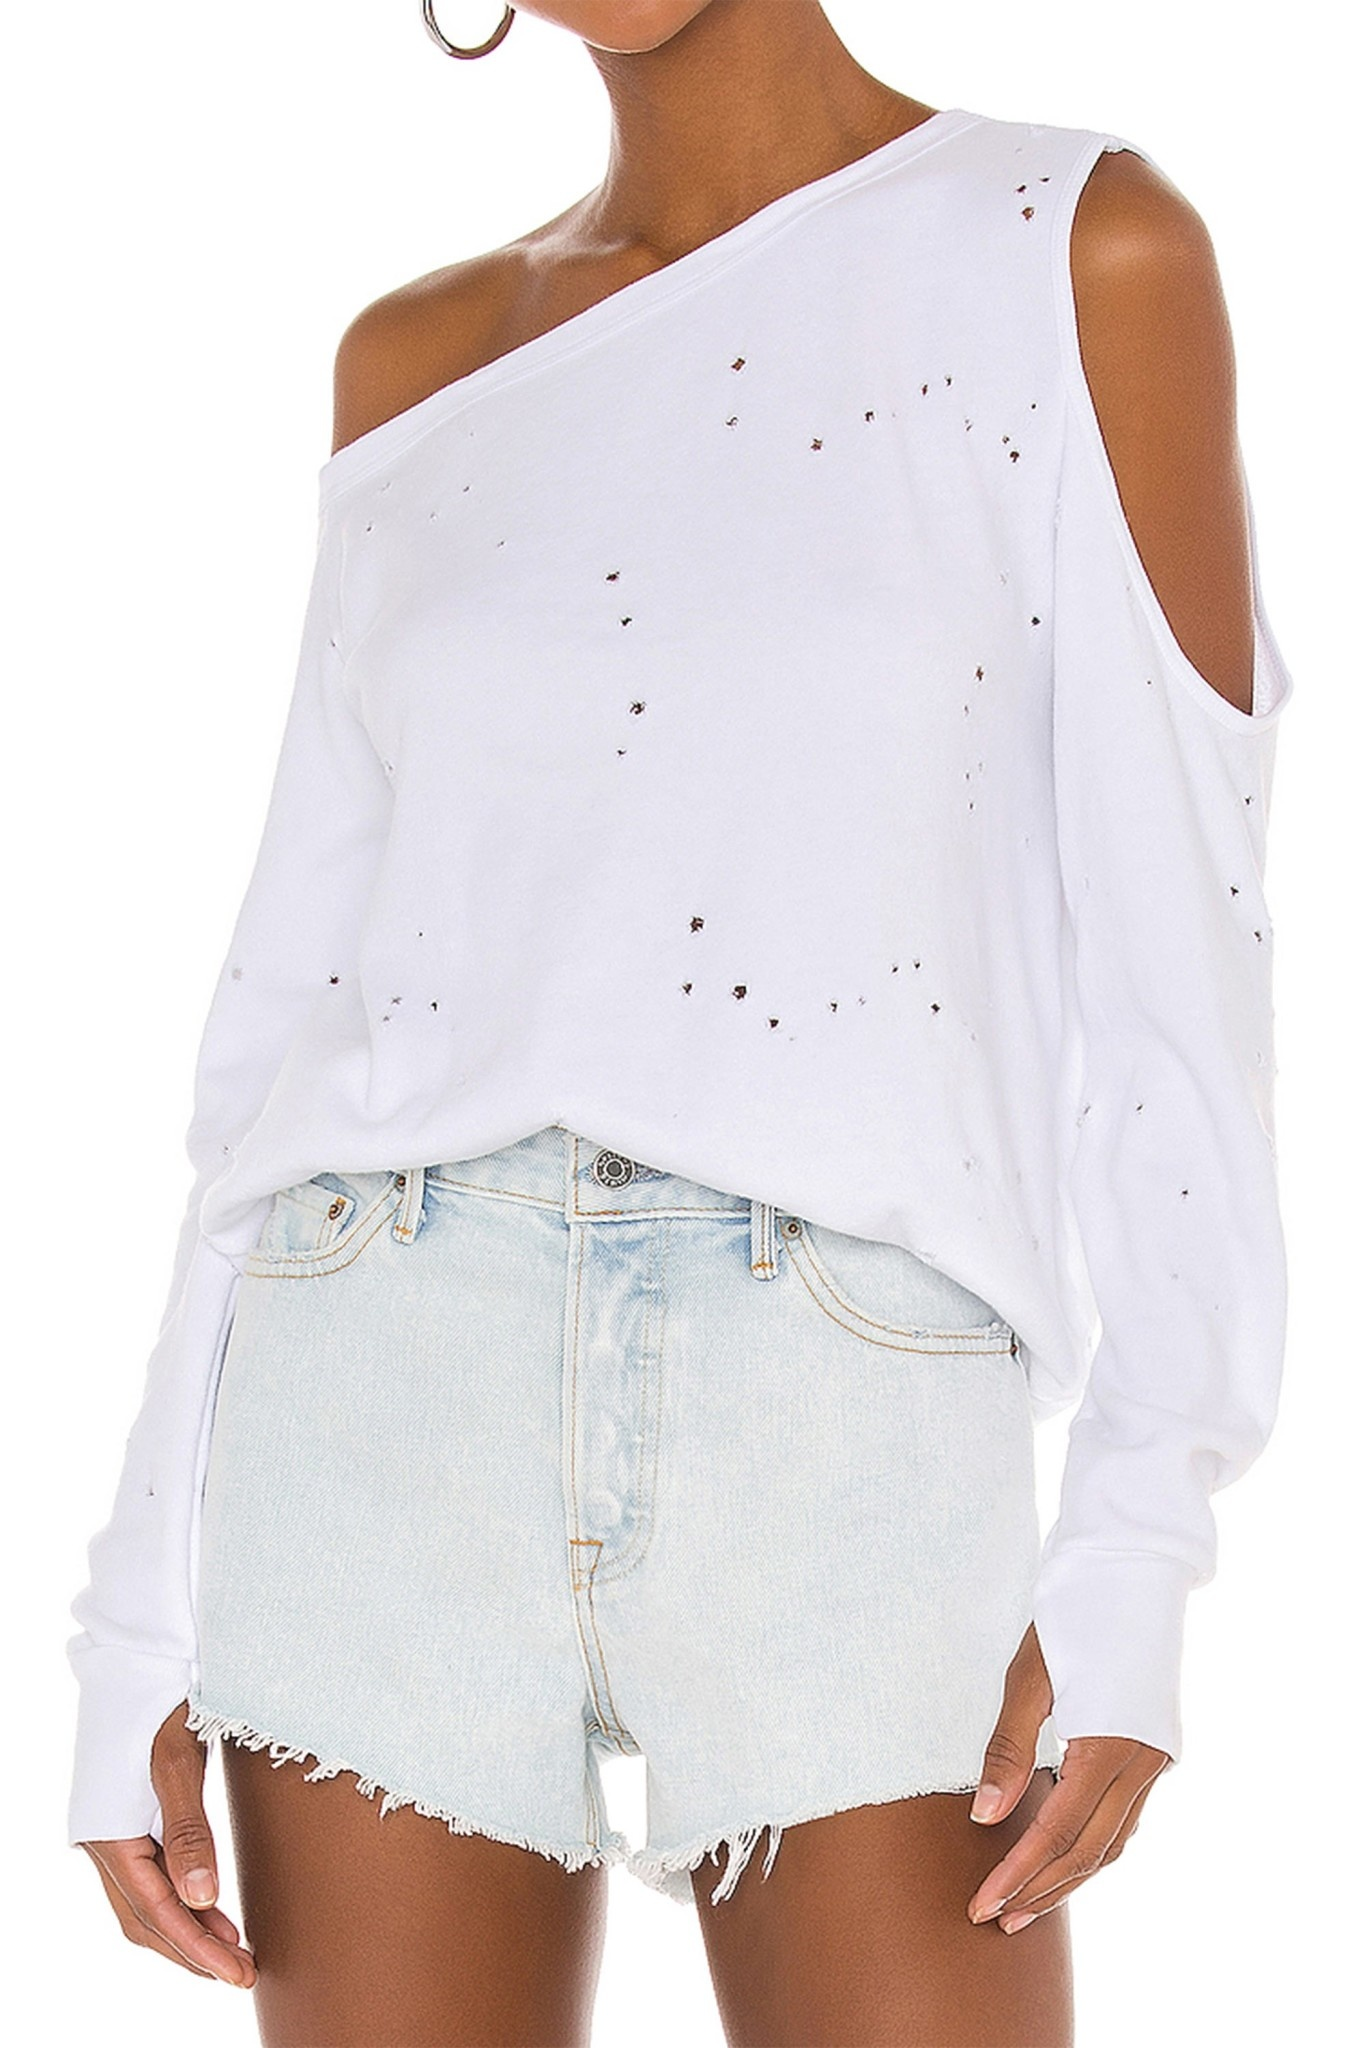 Distressed One Off Shoulder Thumbhole Top